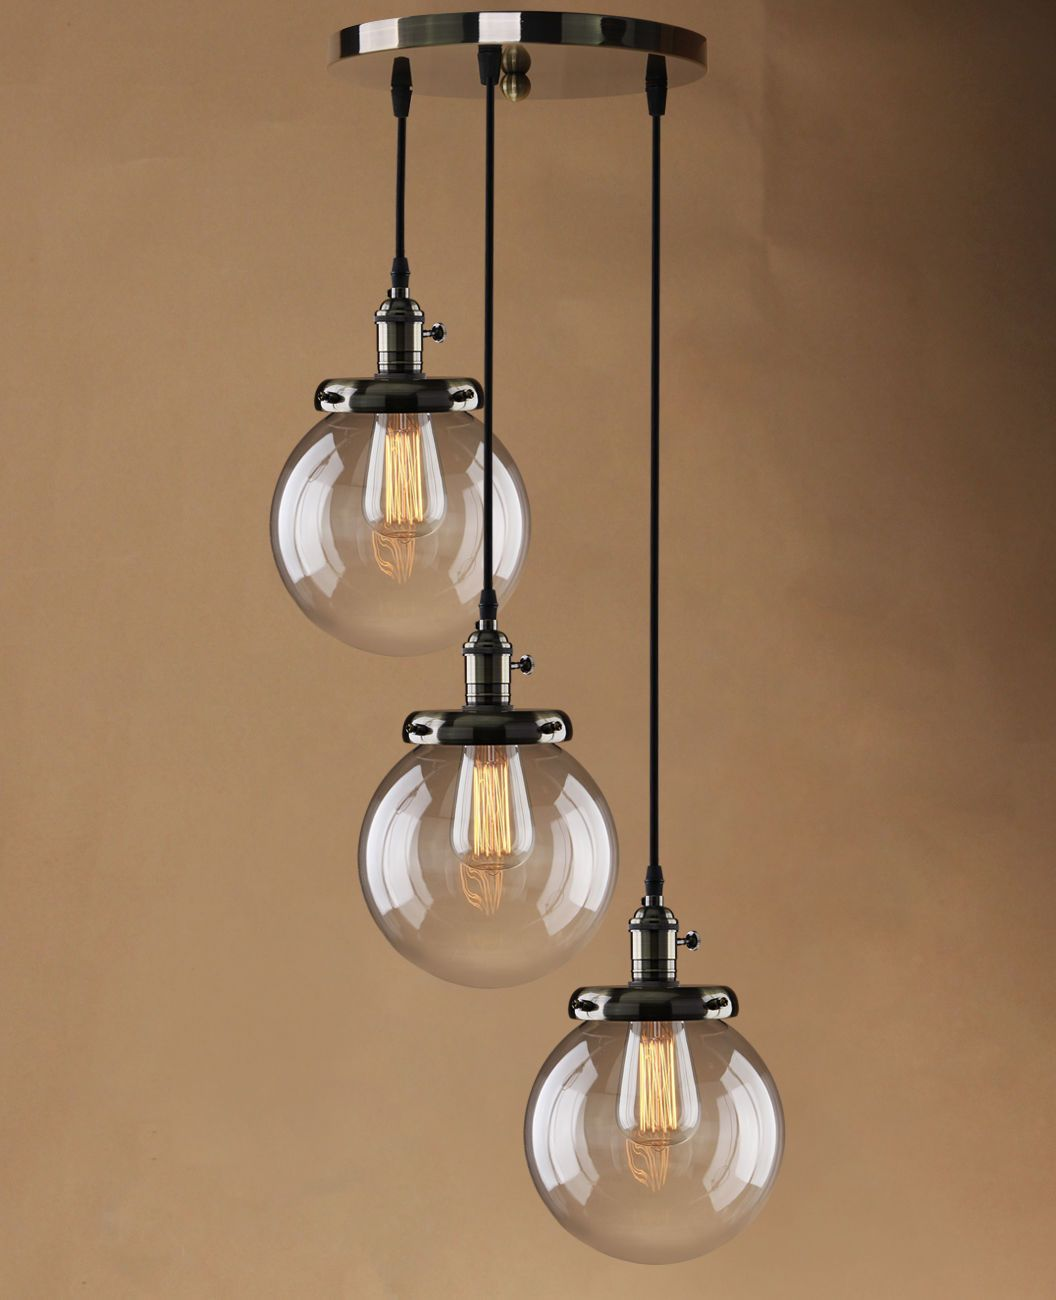 Retro Vintage Cluster Hanging Ceiling Lights Globe 3 Glass Shades ...